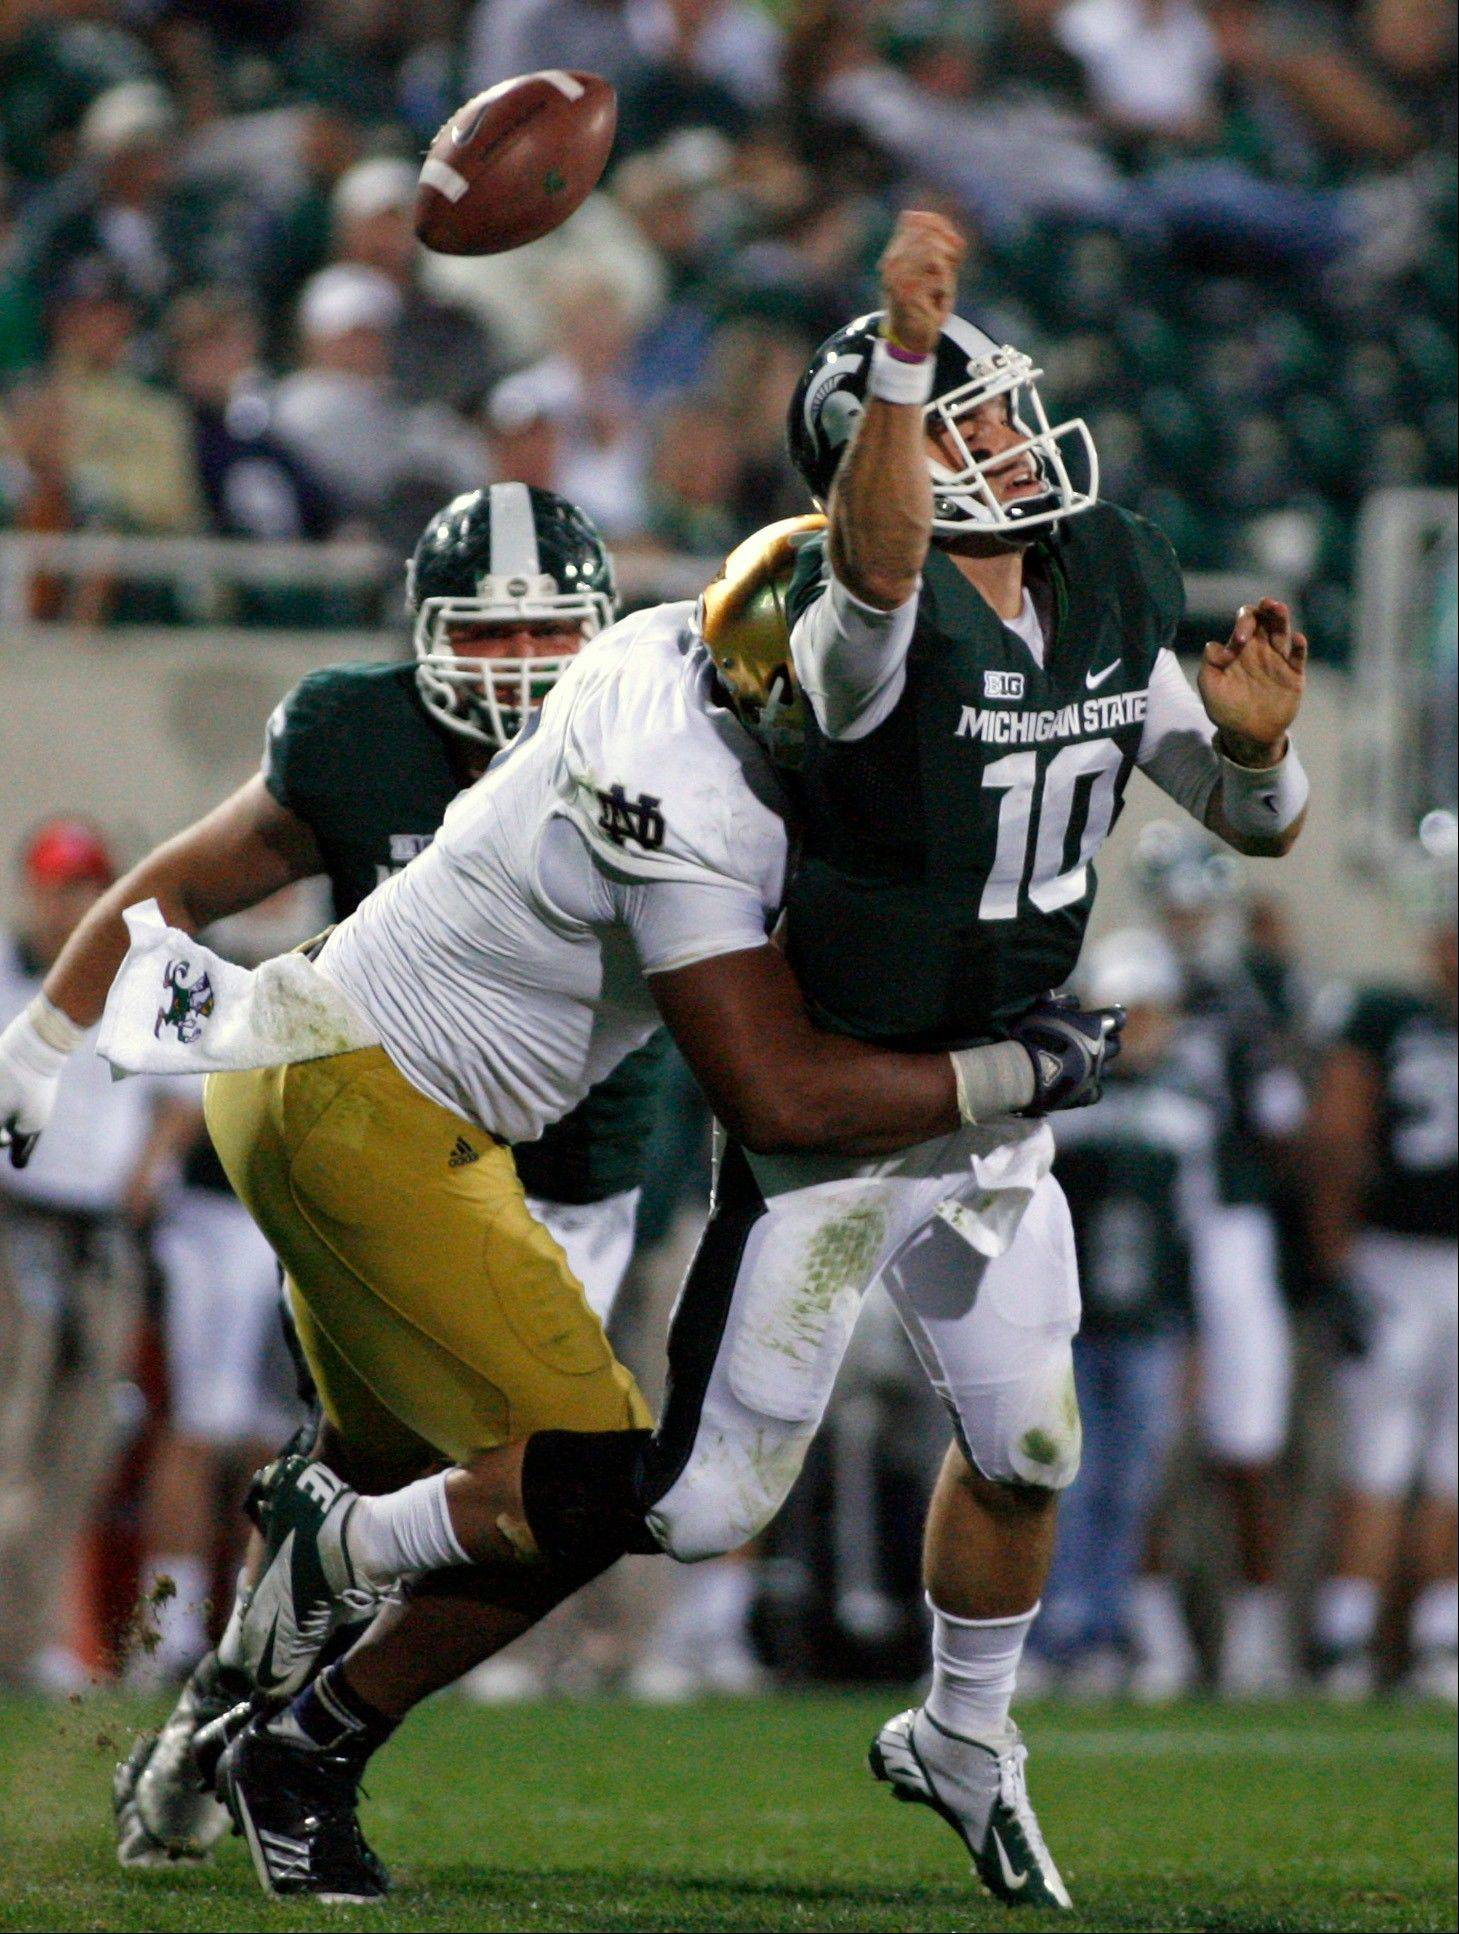 Michigan State quarterback Andrew Maxwell fumbles the ball as he is hit by Notre Dame�s T.J. Jones on Sept. 15, 2012. Maxwell completed only 52.5 percent of his passes last season.